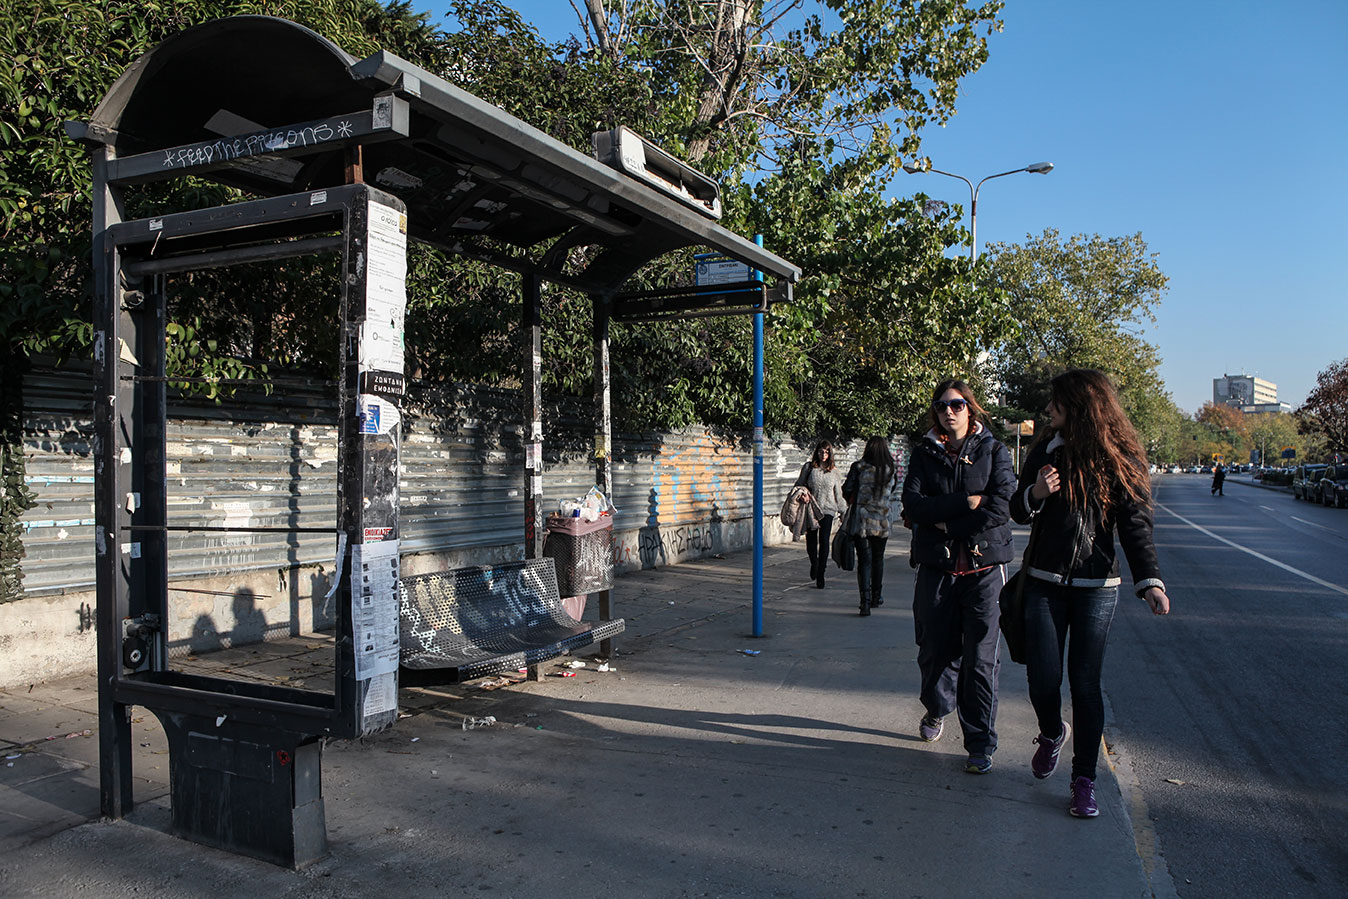 A crumbling bus shelter: one of the many scars left by the violent anti-austerity demonstrations that rocked Thessaloniki in the recent past. Due to the drastic drop in public advertisement revenues, the city is unable to maintain or replace any public property.